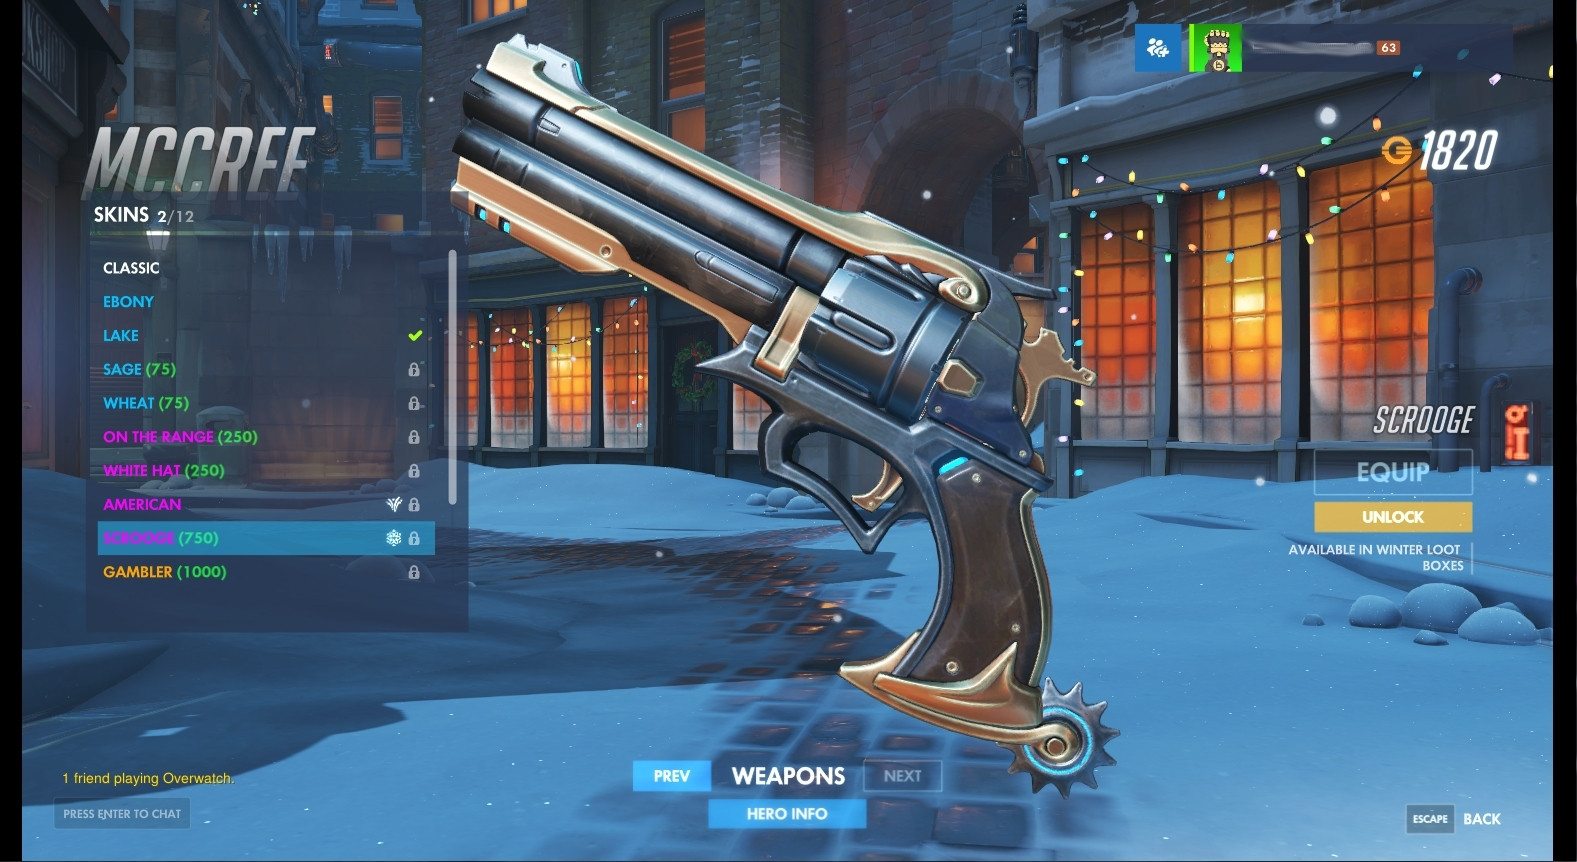 McCree (Scrooge) Weapon